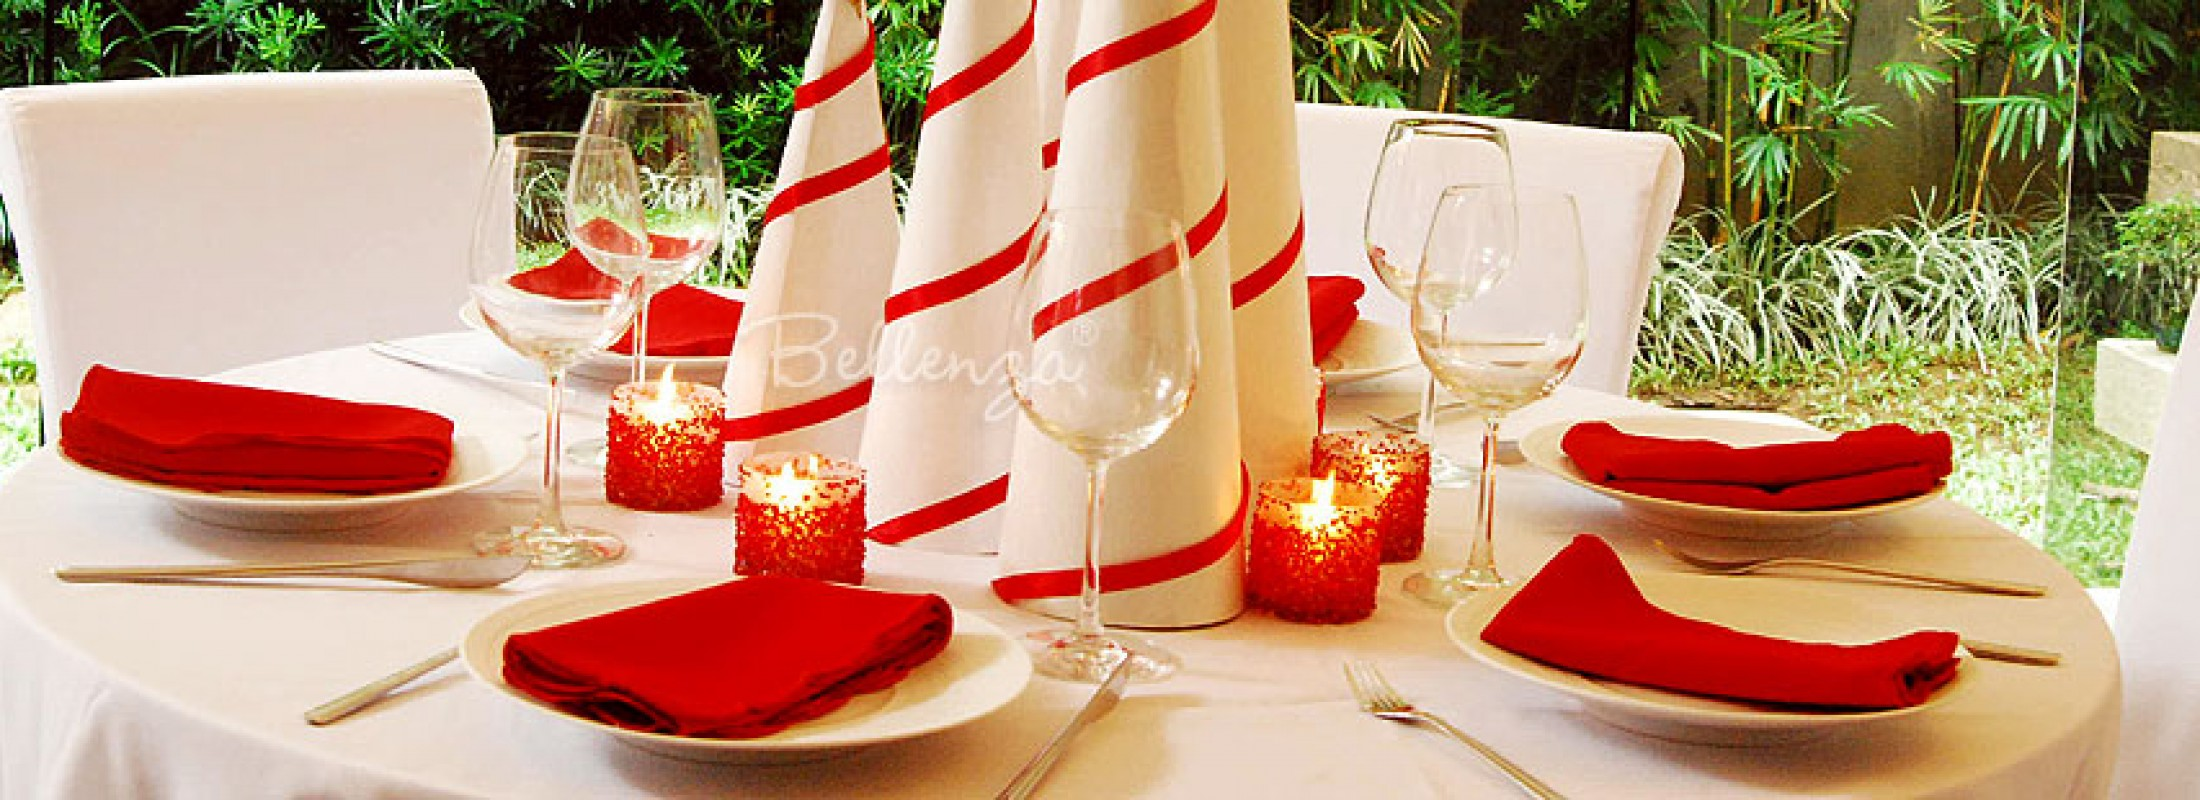 & Simple Yet Festive Holiday Table Decorations